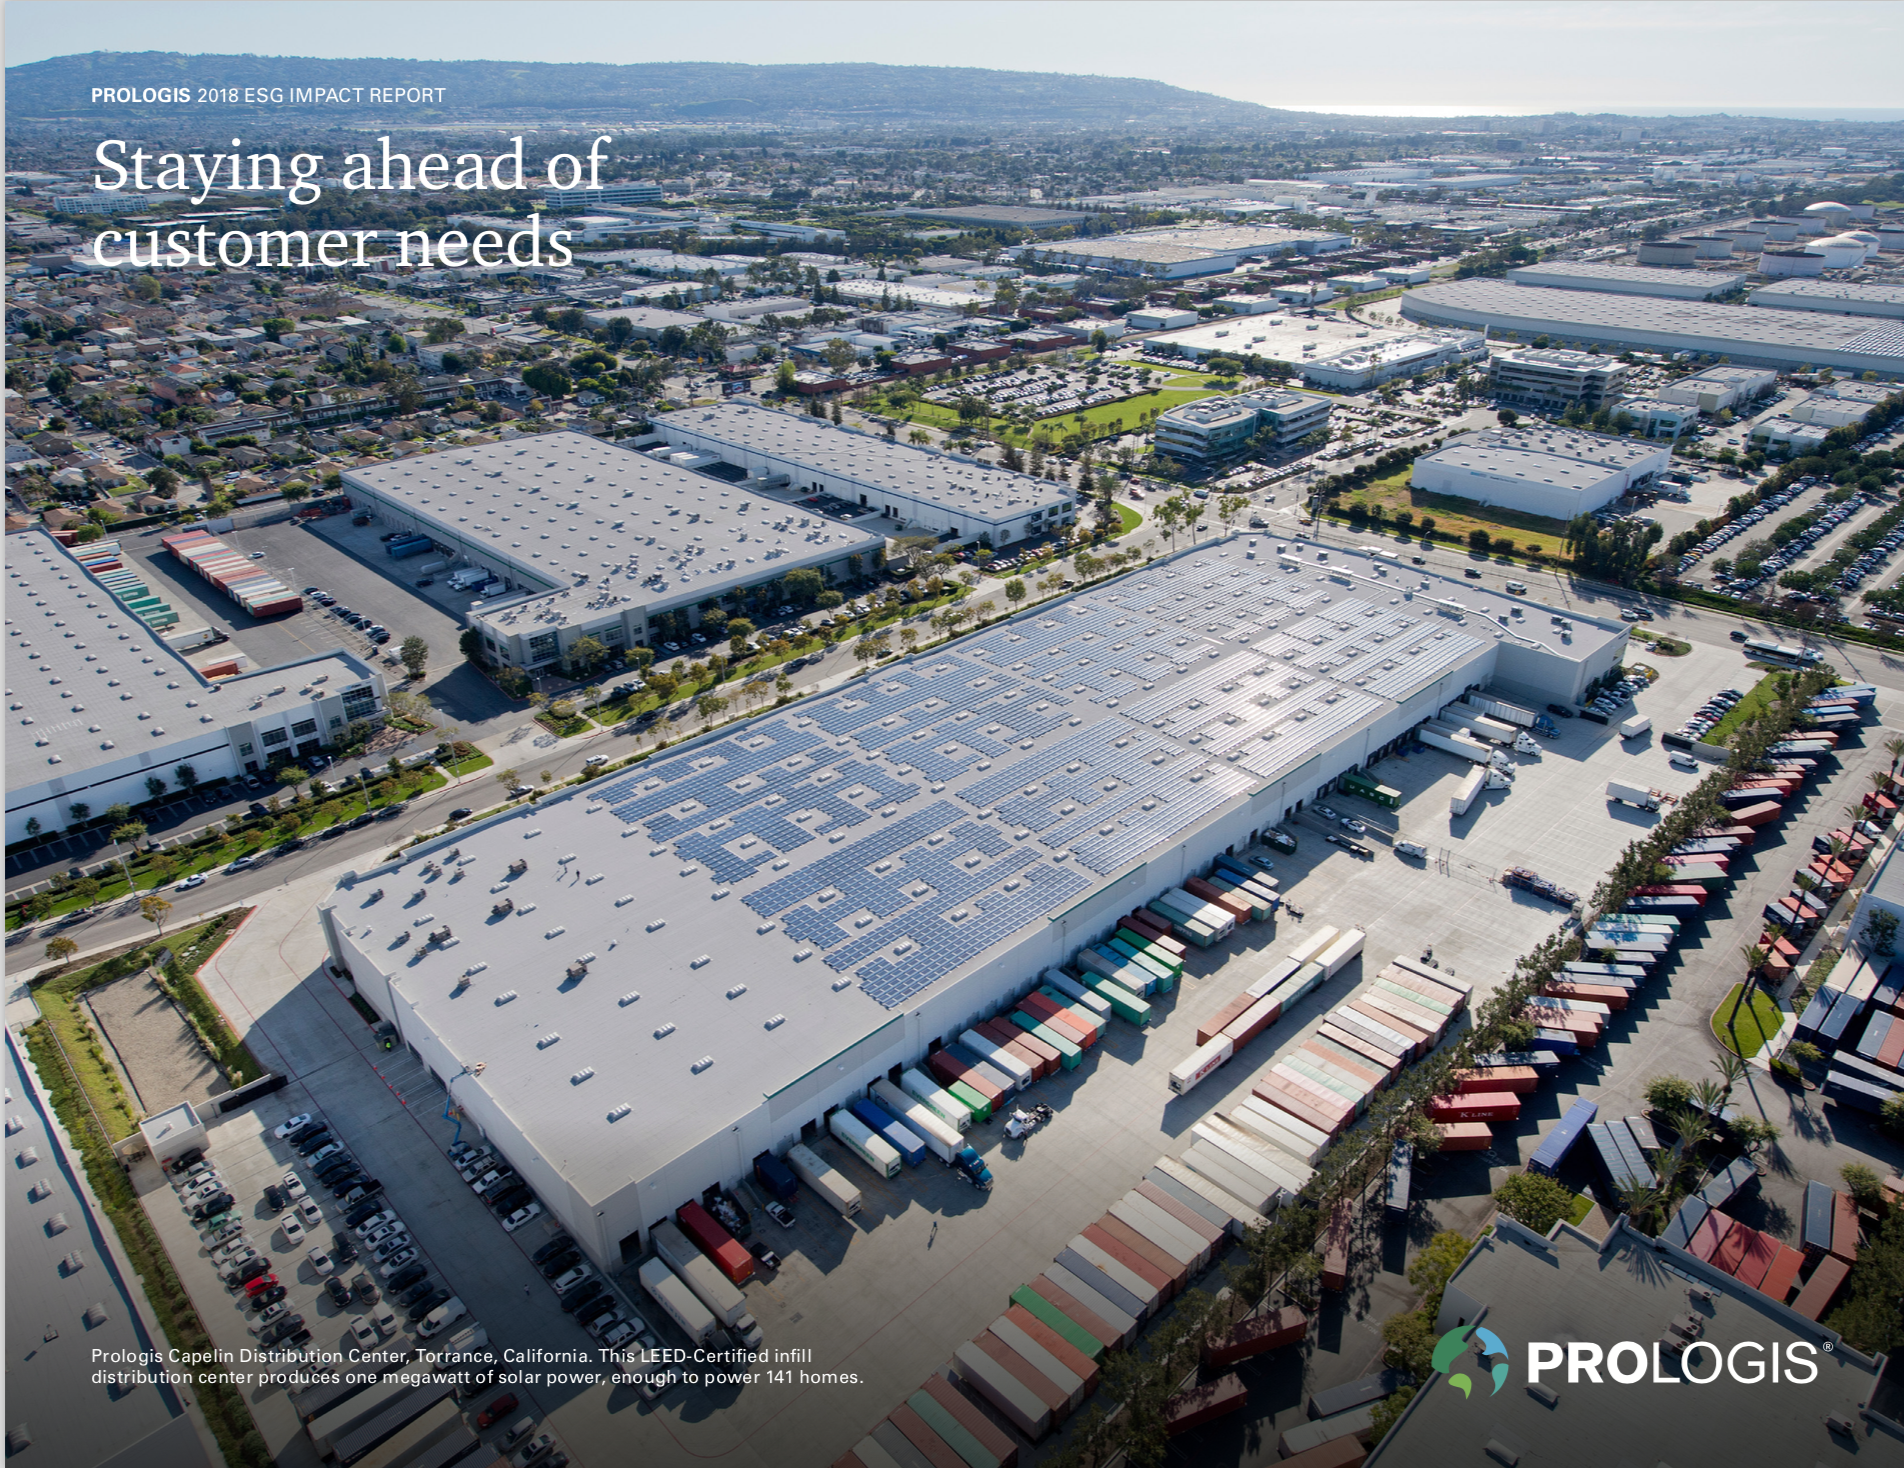 Image of the 2018 Prologis ESG Sustainability Report cover